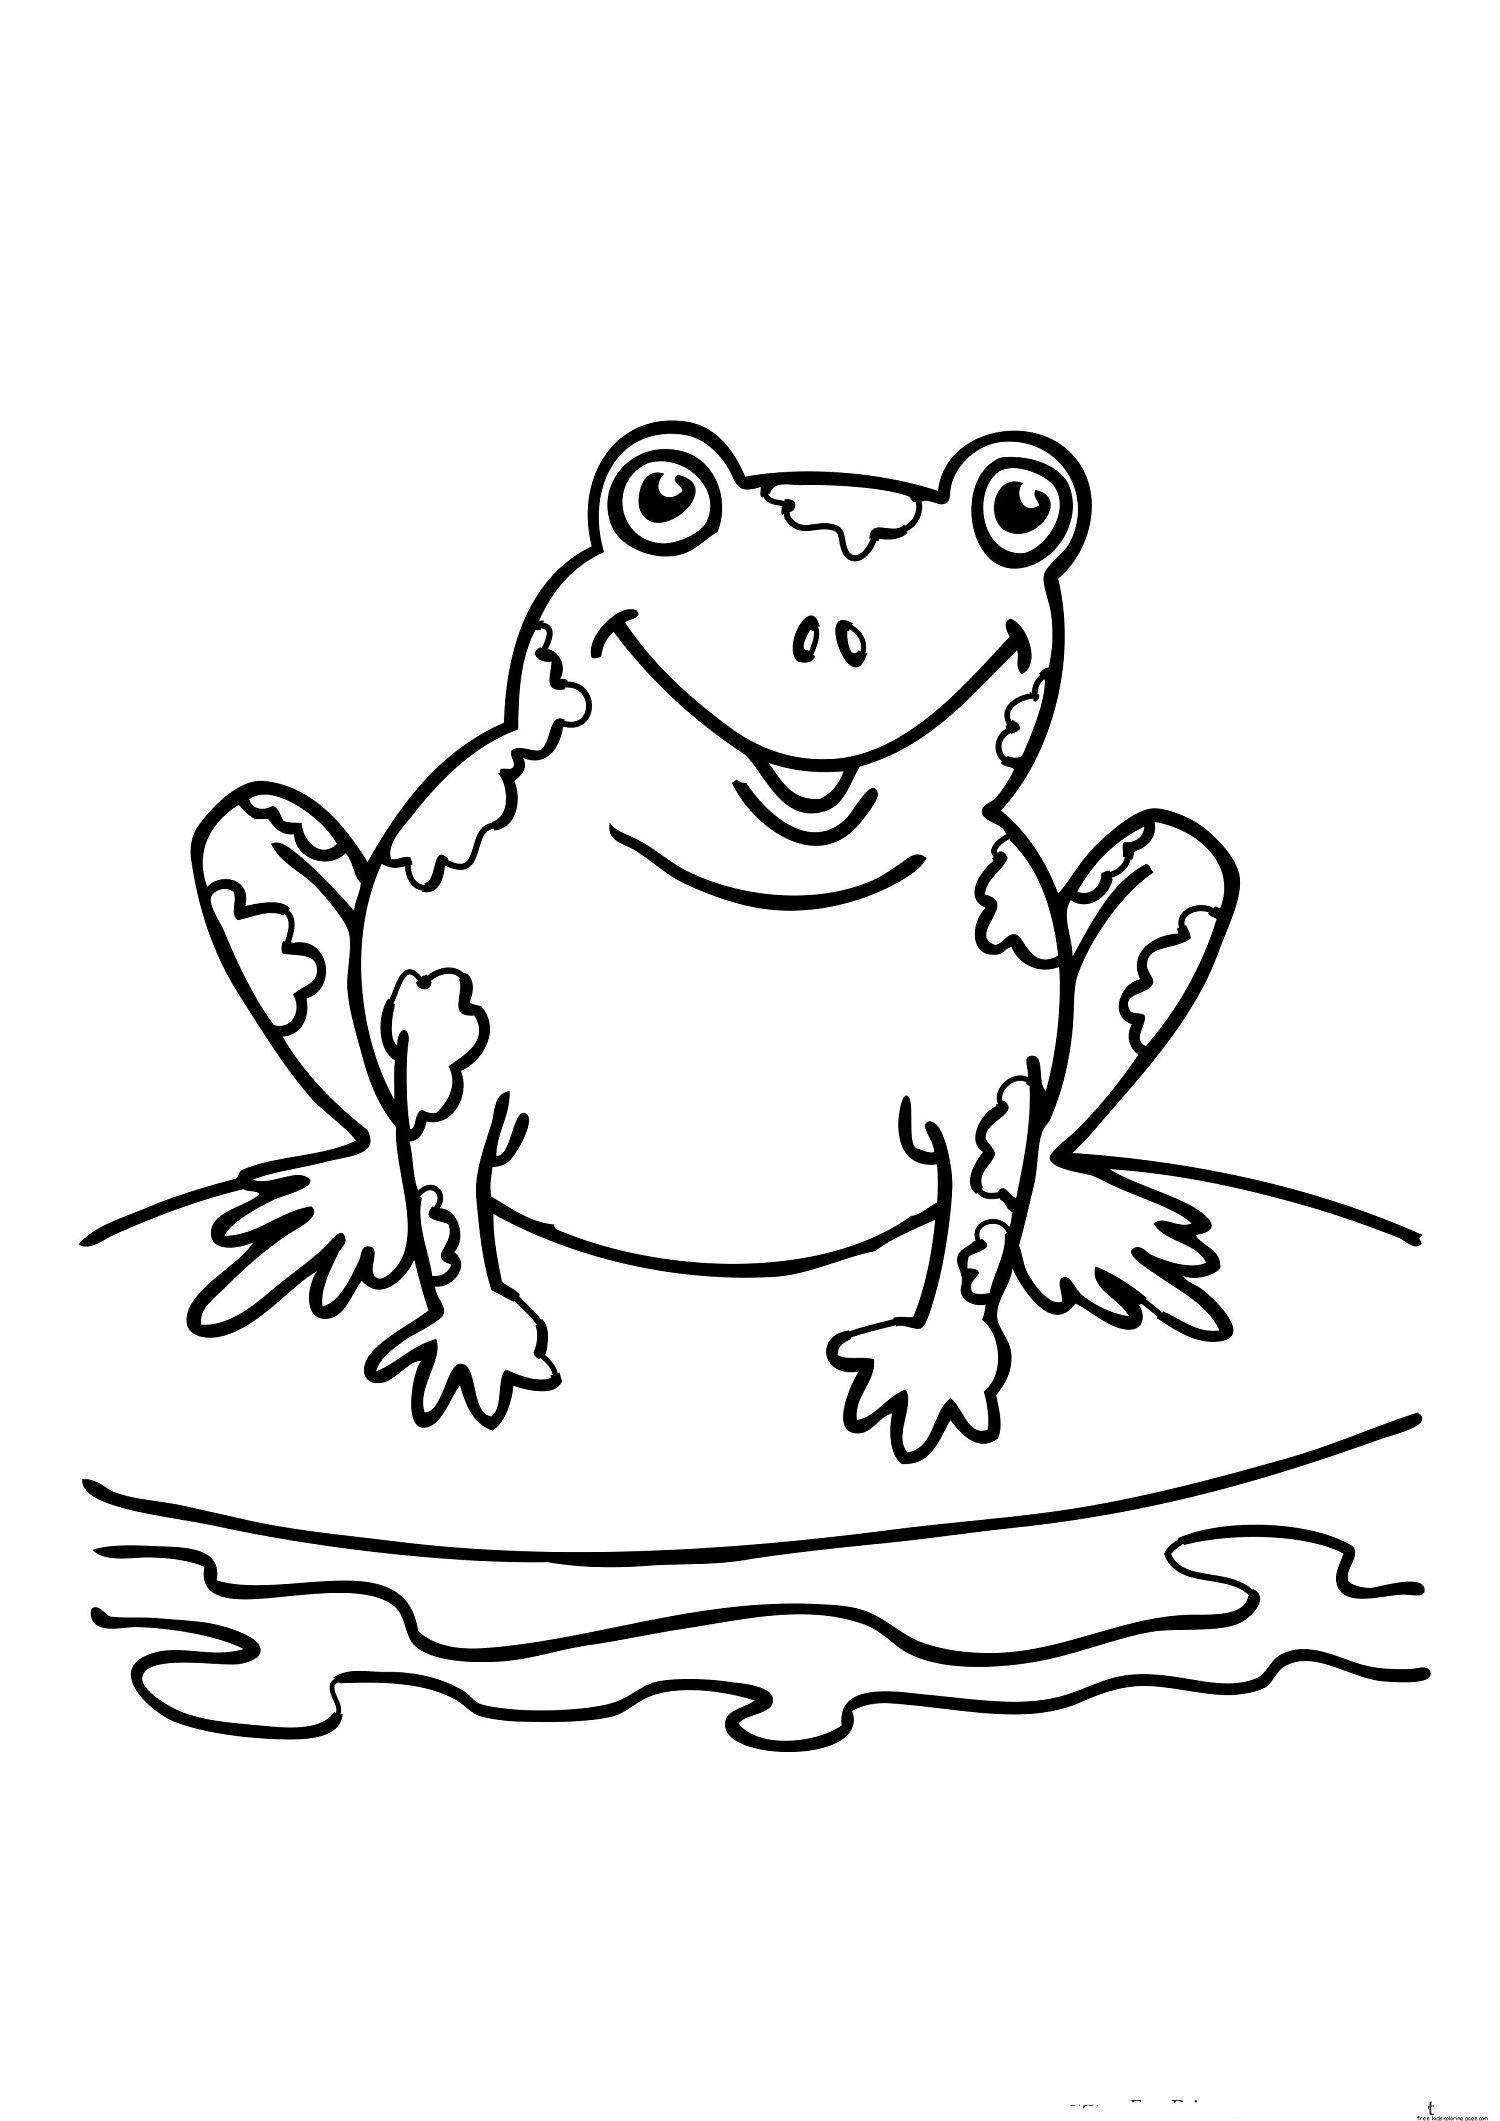 Frog Coloring Pages Printable Kids Colouring Gekimoe 10311